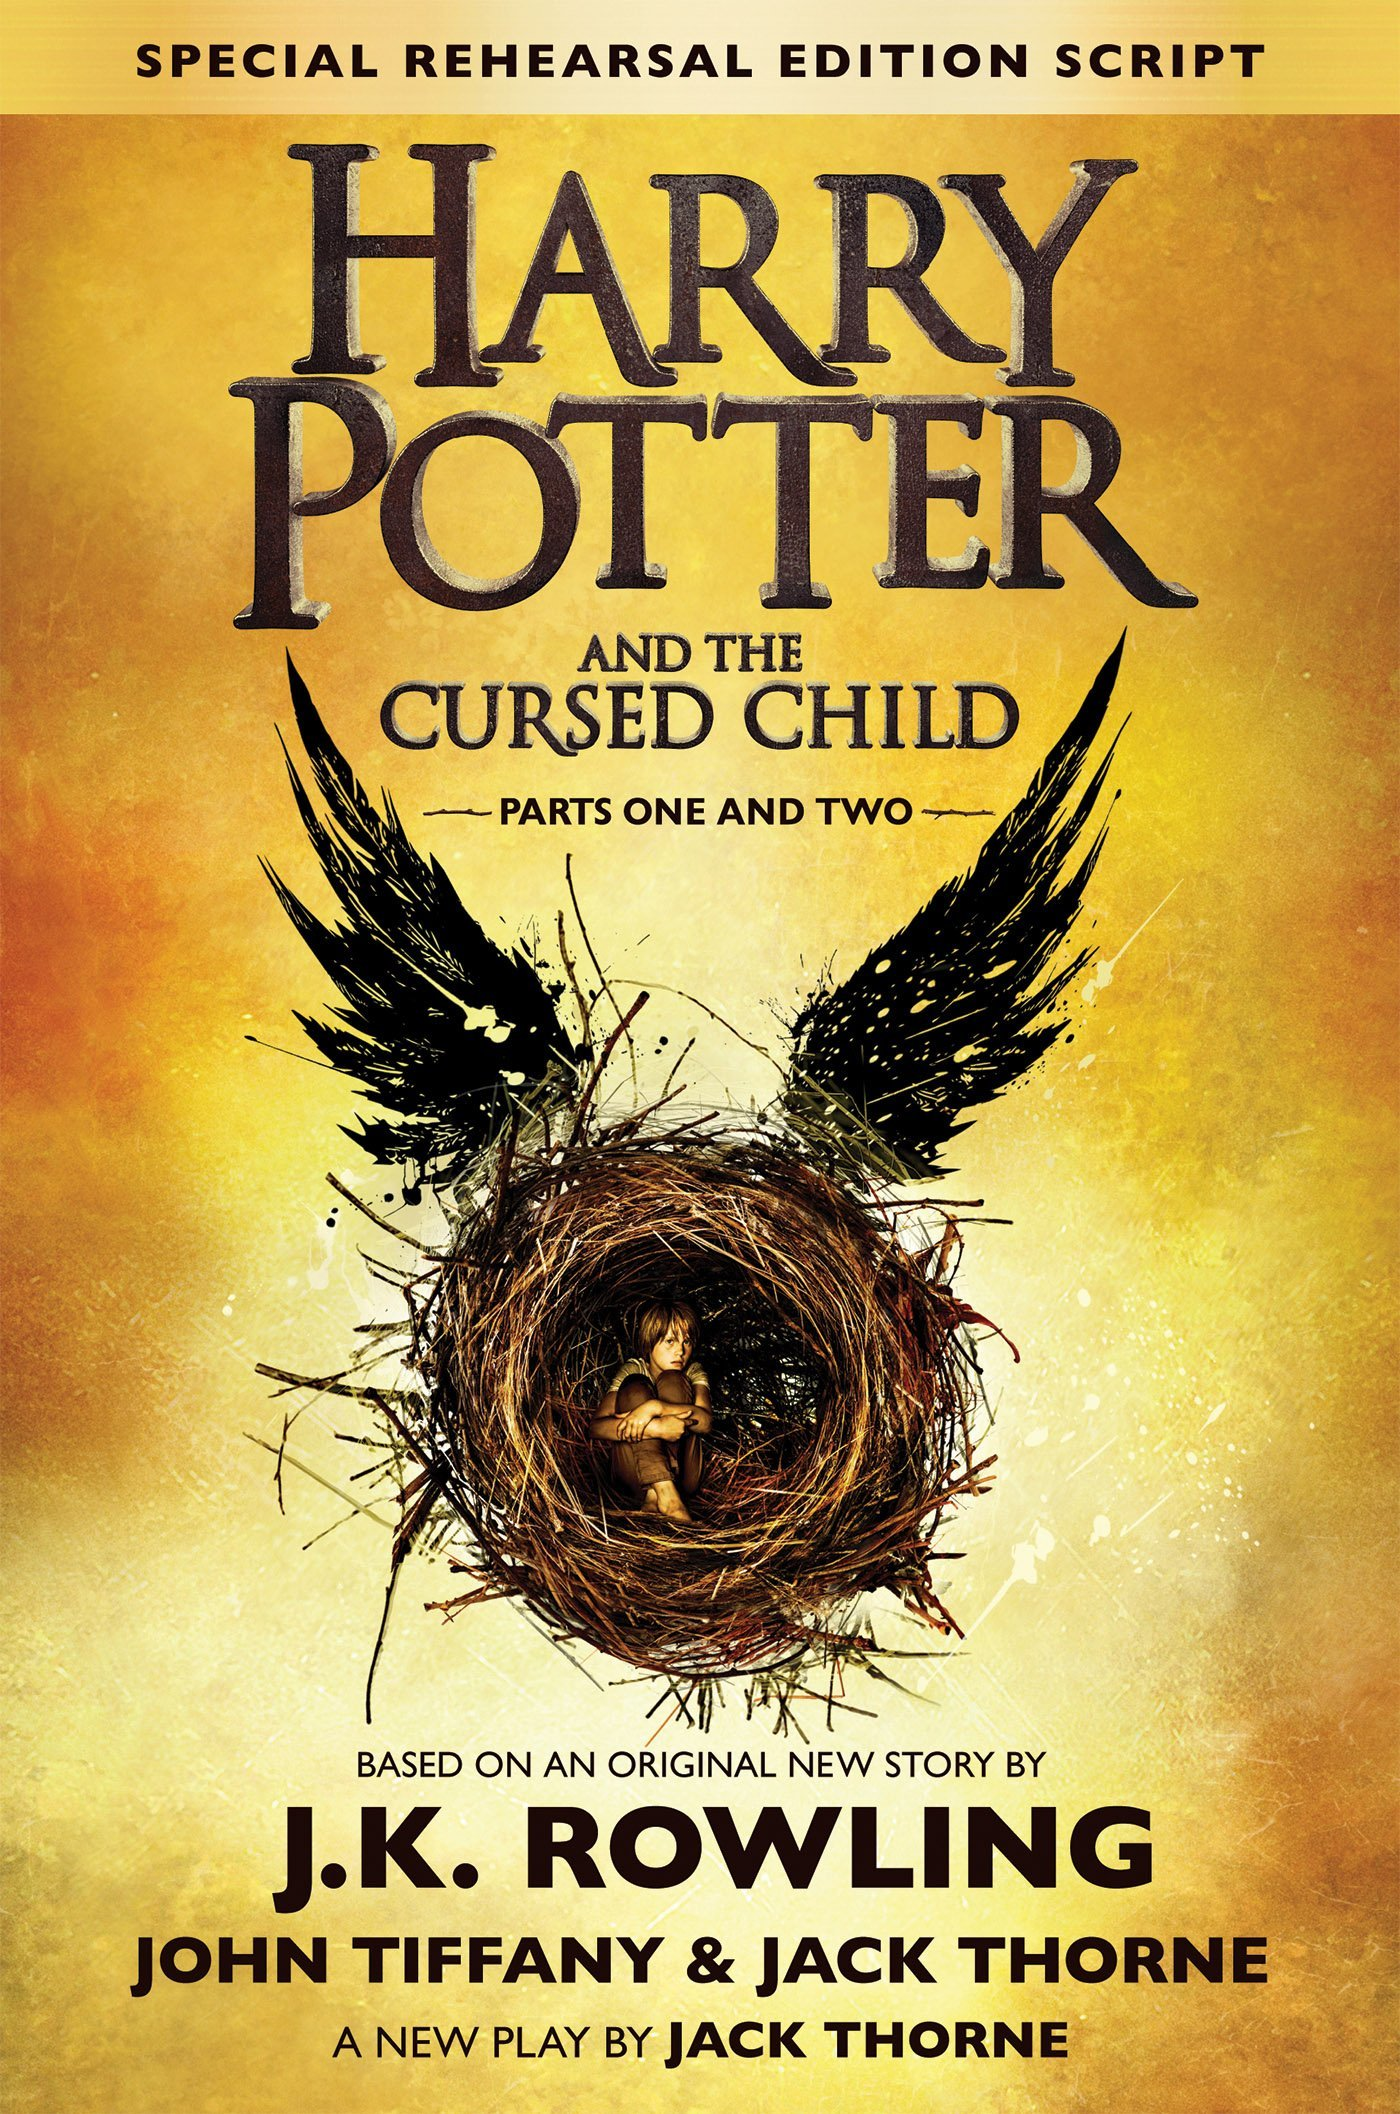 Harry Potter And The Cursed Child: Ten Things To Know Before Midnight's Worldwide Launch